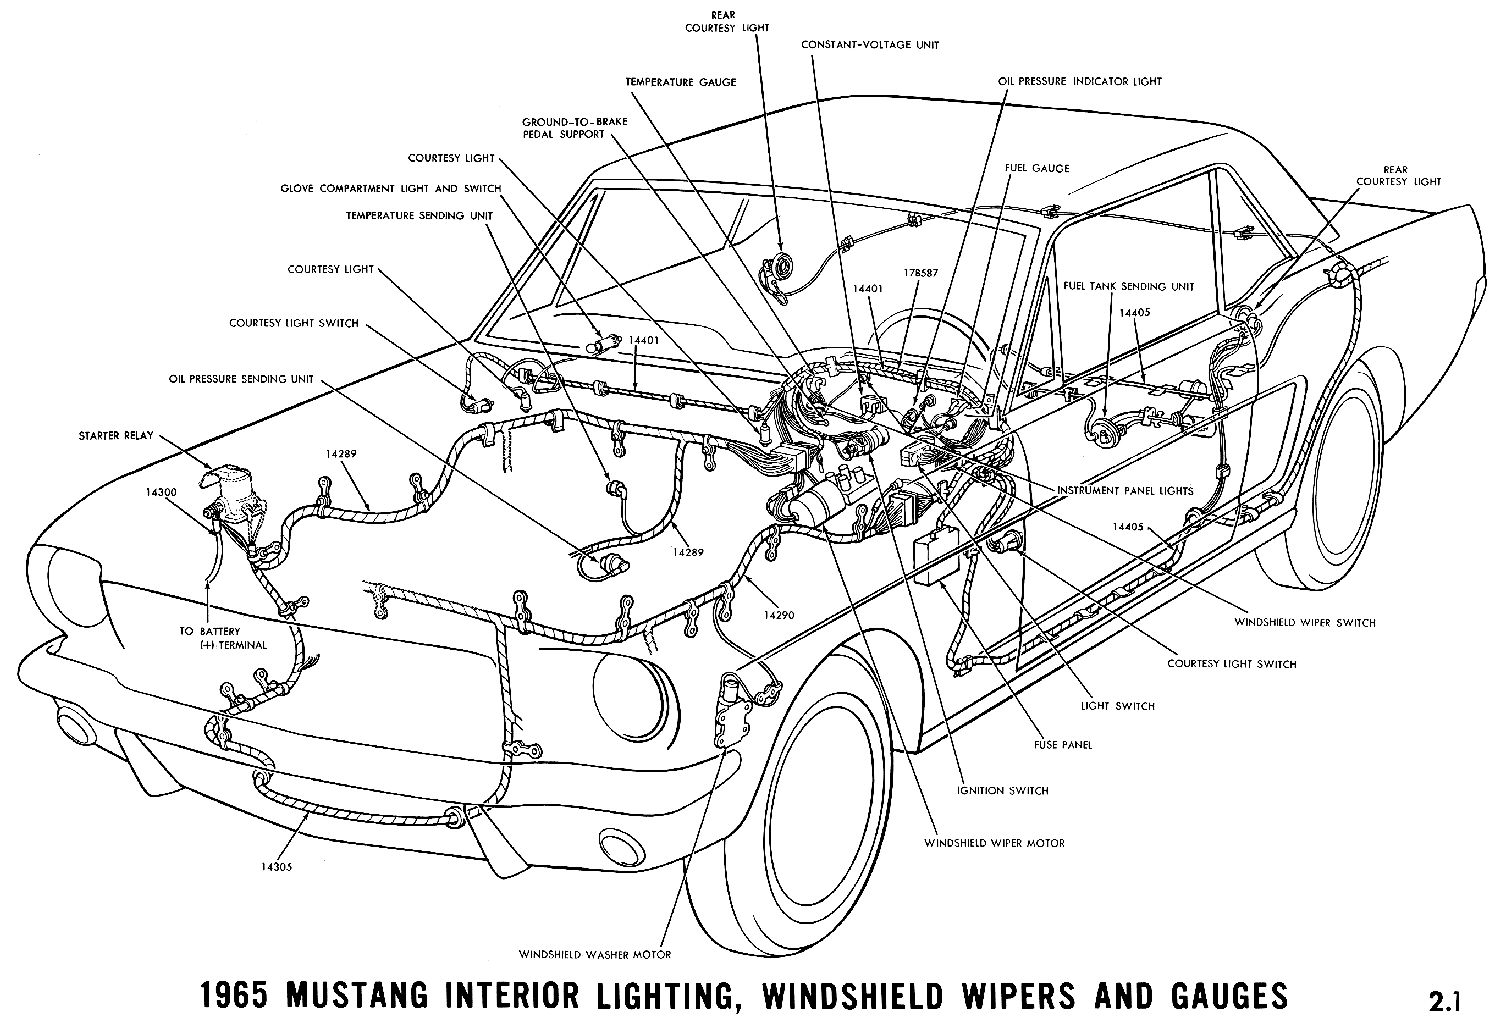 1966 Mustang Back Up Light Wiring - Wiring Diagram List on 2000 mustang firing order, 2000 mustang owners manual, 2000 ford 3.8 engine diagram, 2000 mustang charging system, 2000 mustang alternator wiring, 2000 mustang jacking points, 2000 mustang solenoid, 2000 mustang tires, 2000 mustang thermostat, 2000 mustang battery, 2000 mustang stereo wiring, 2000 mustang steering, 2000 mustang troubleshooting, 2000 mustang wiper motor, bmw wiring diagram, ford wiring diagram, 2000 mustang repair, 2000 mustang wire harness, chevrolet wiring diagram, mustang 4.6 engine diagram,